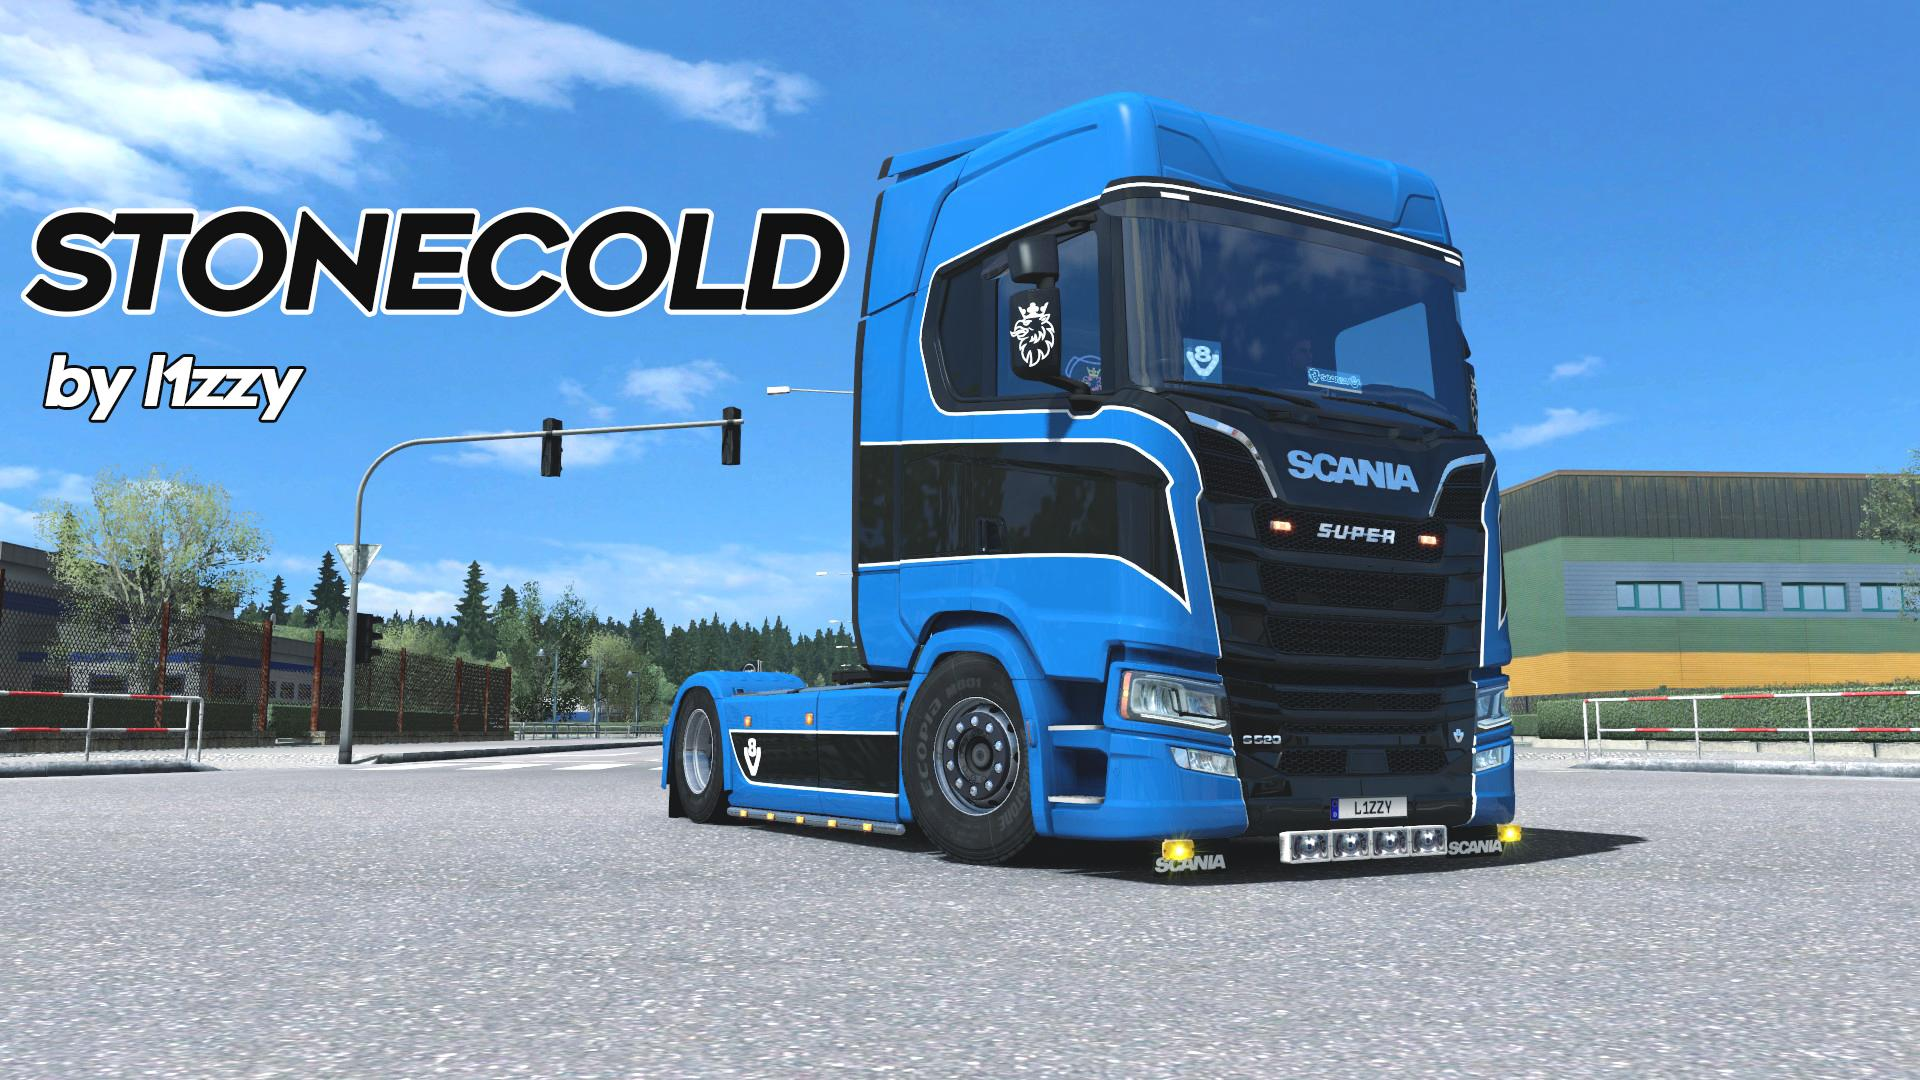 scania s stonecold by l1zzy truck skin ets2 mod. Black Bedroom Furniture Sets. Home Design Ideas